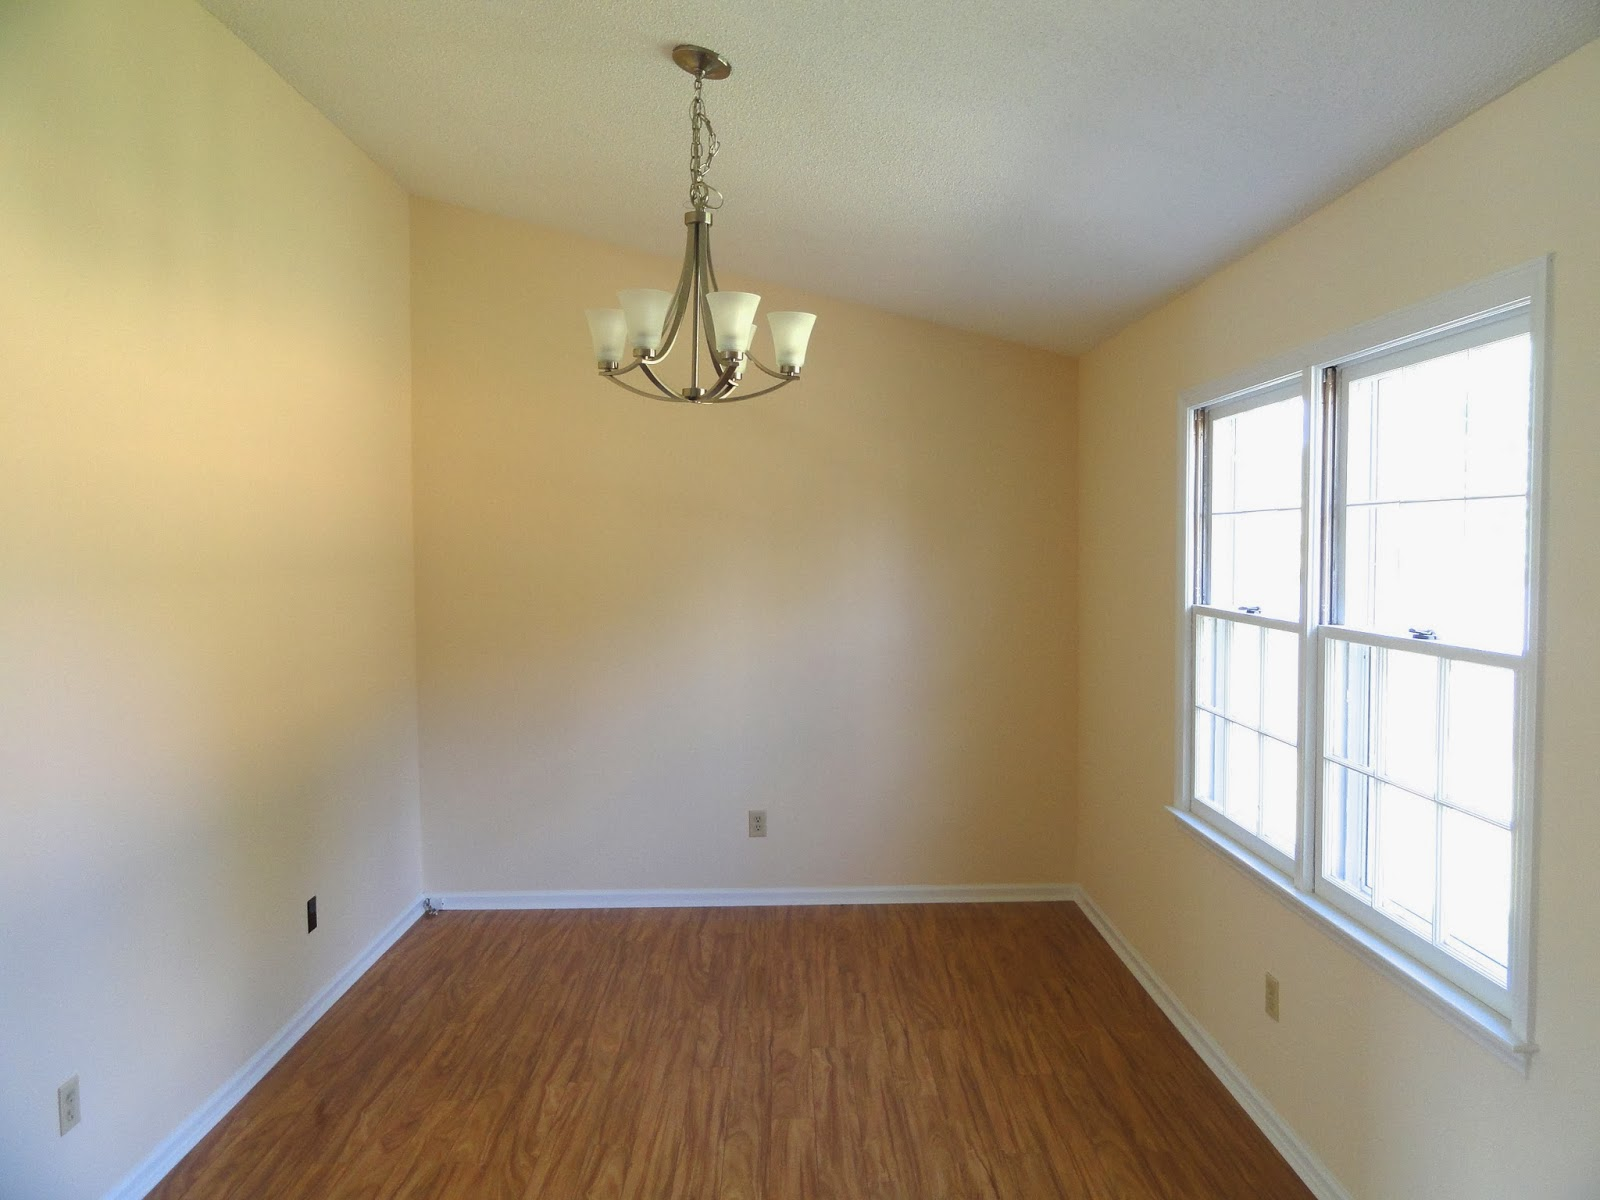 Jacksonville north carolina real estate move in ready for Hardwood floors jacksonville nc